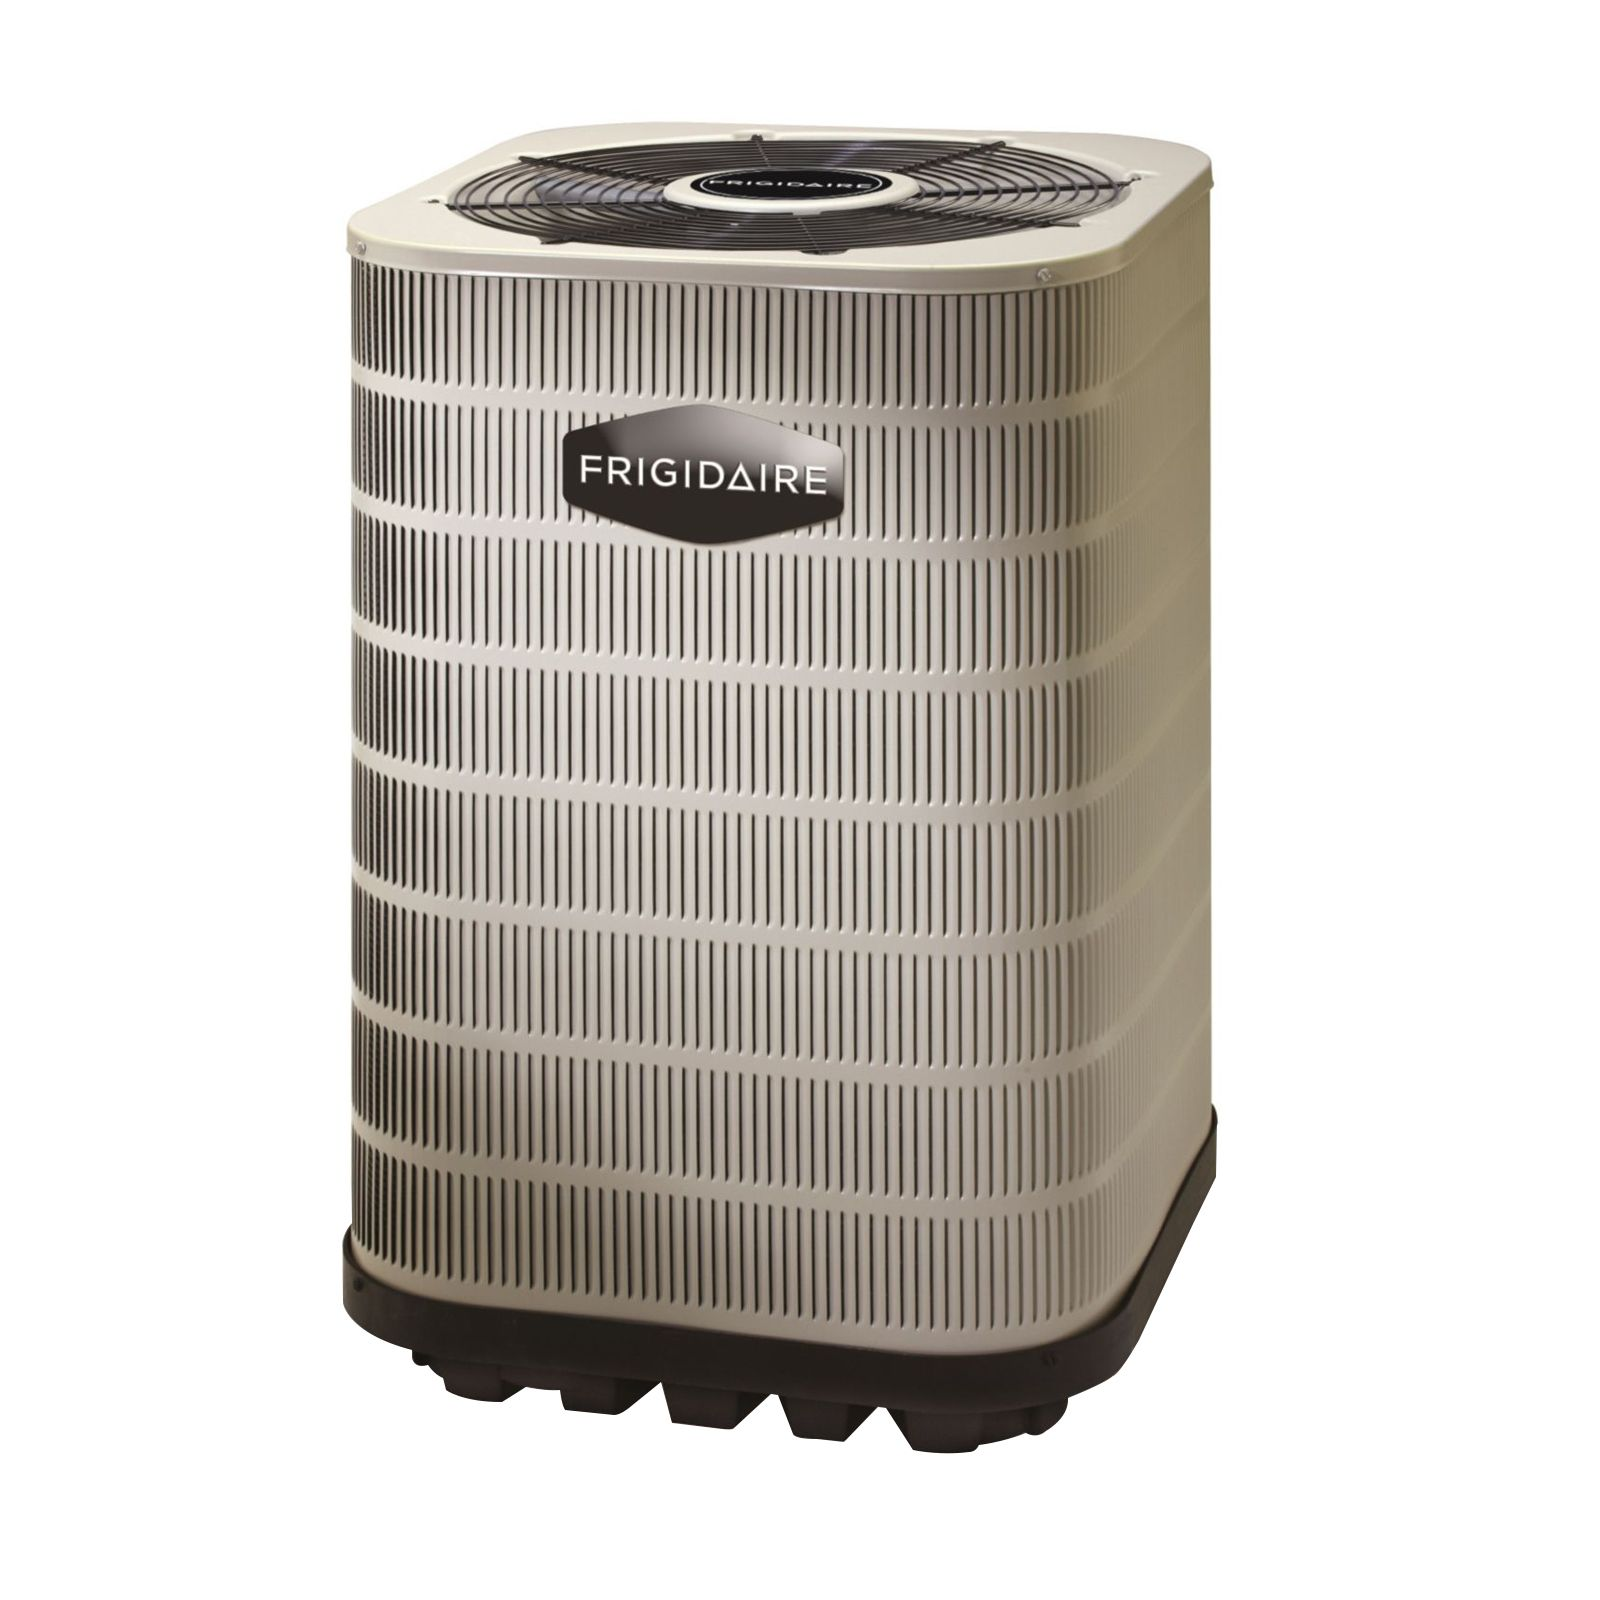 Frigidaire 921986E - ET4BE-048KA - 4 Ton 14 SEER High Efficiency Heat Pump, R410A